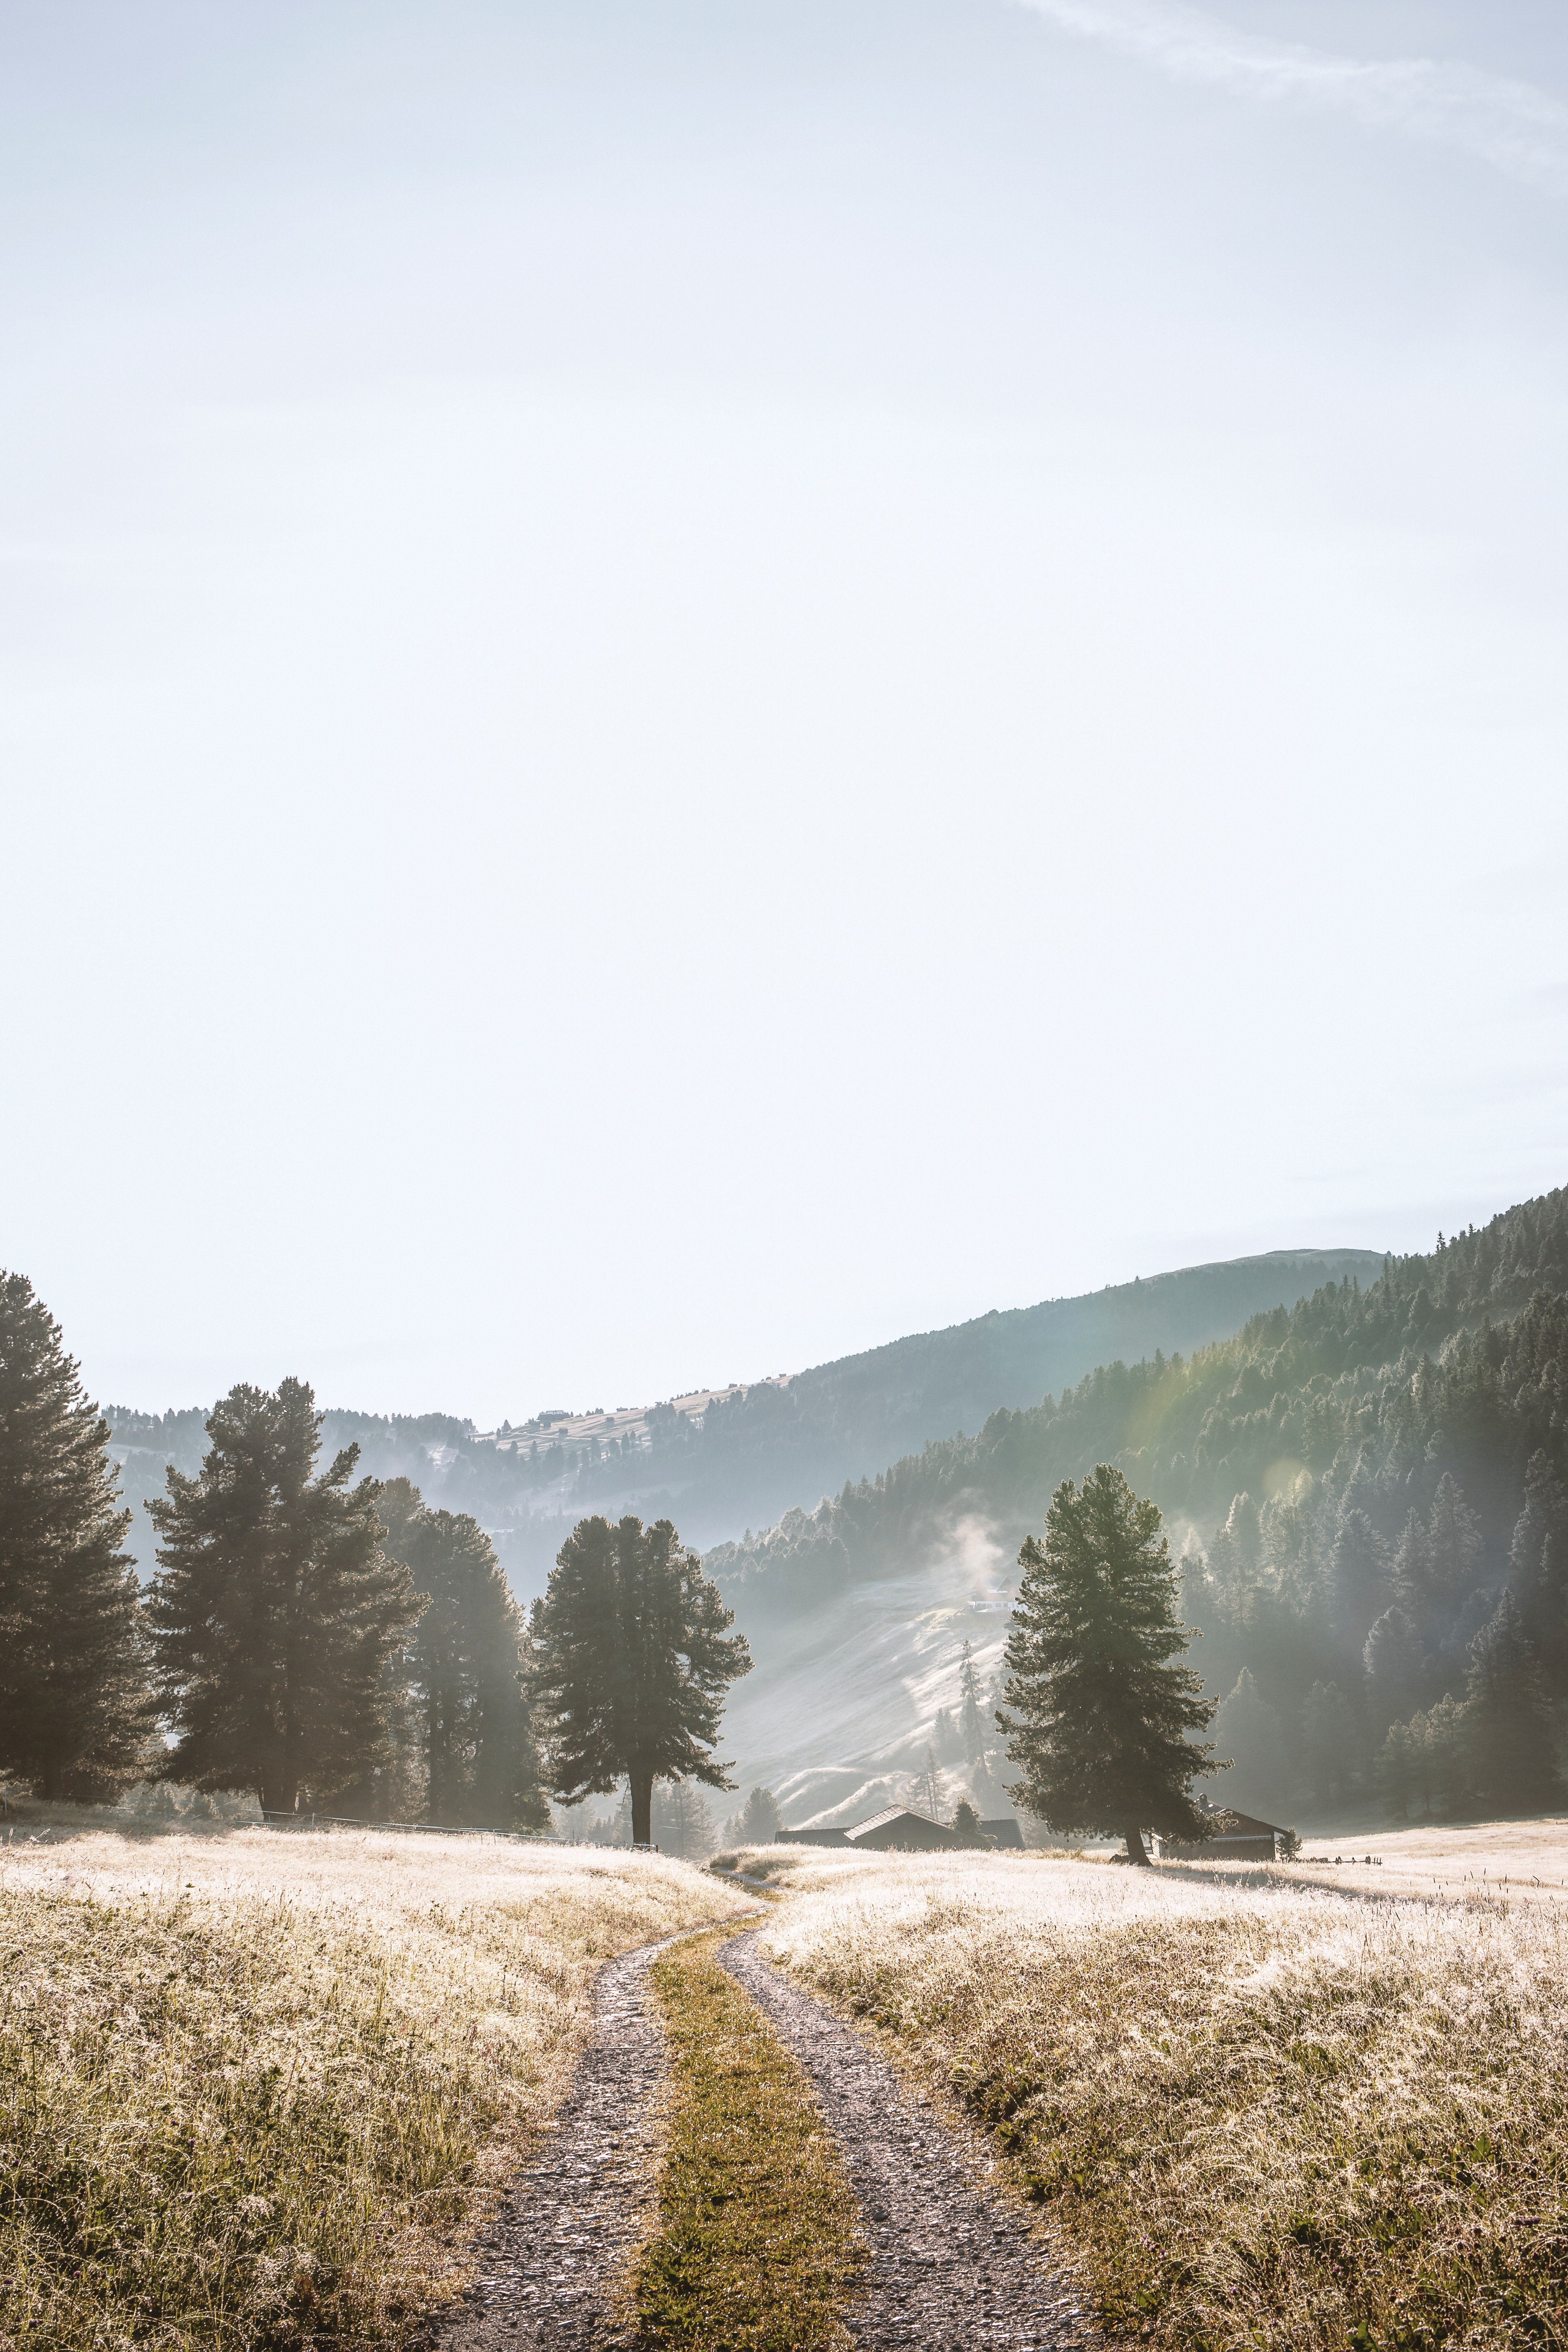 107043 download wallpaper Nature, Road, Fog, Trees, Mountains, Landscape screensavers and pictures for free